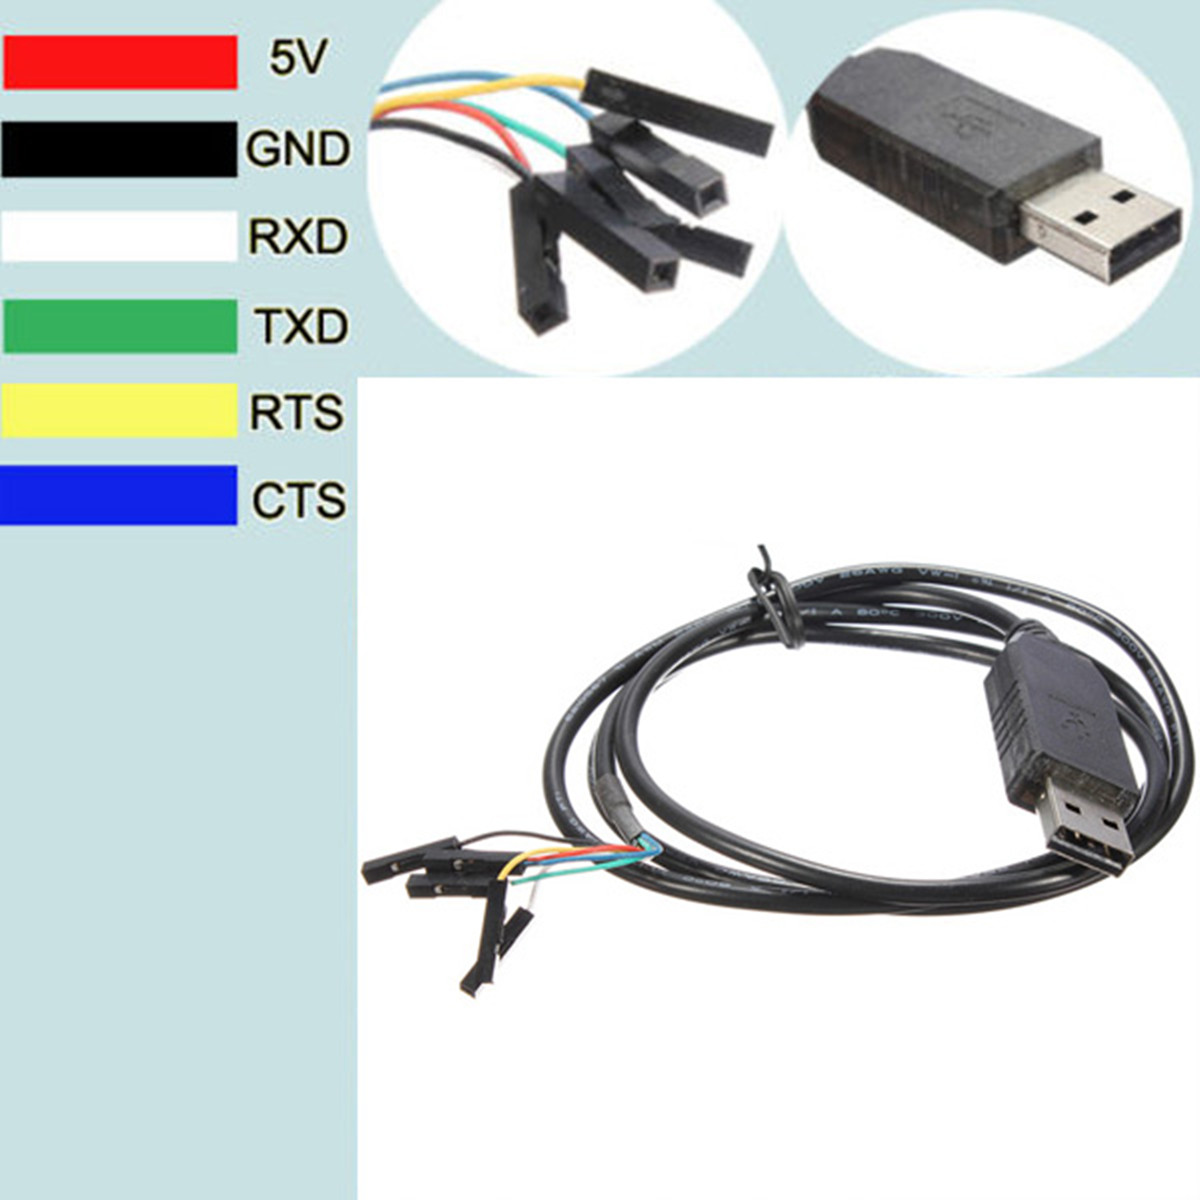 Arduino Ftdi Usb Cable To Ttl Serial V Robotshop Schematic Pin Ft Rl Rs Adapter